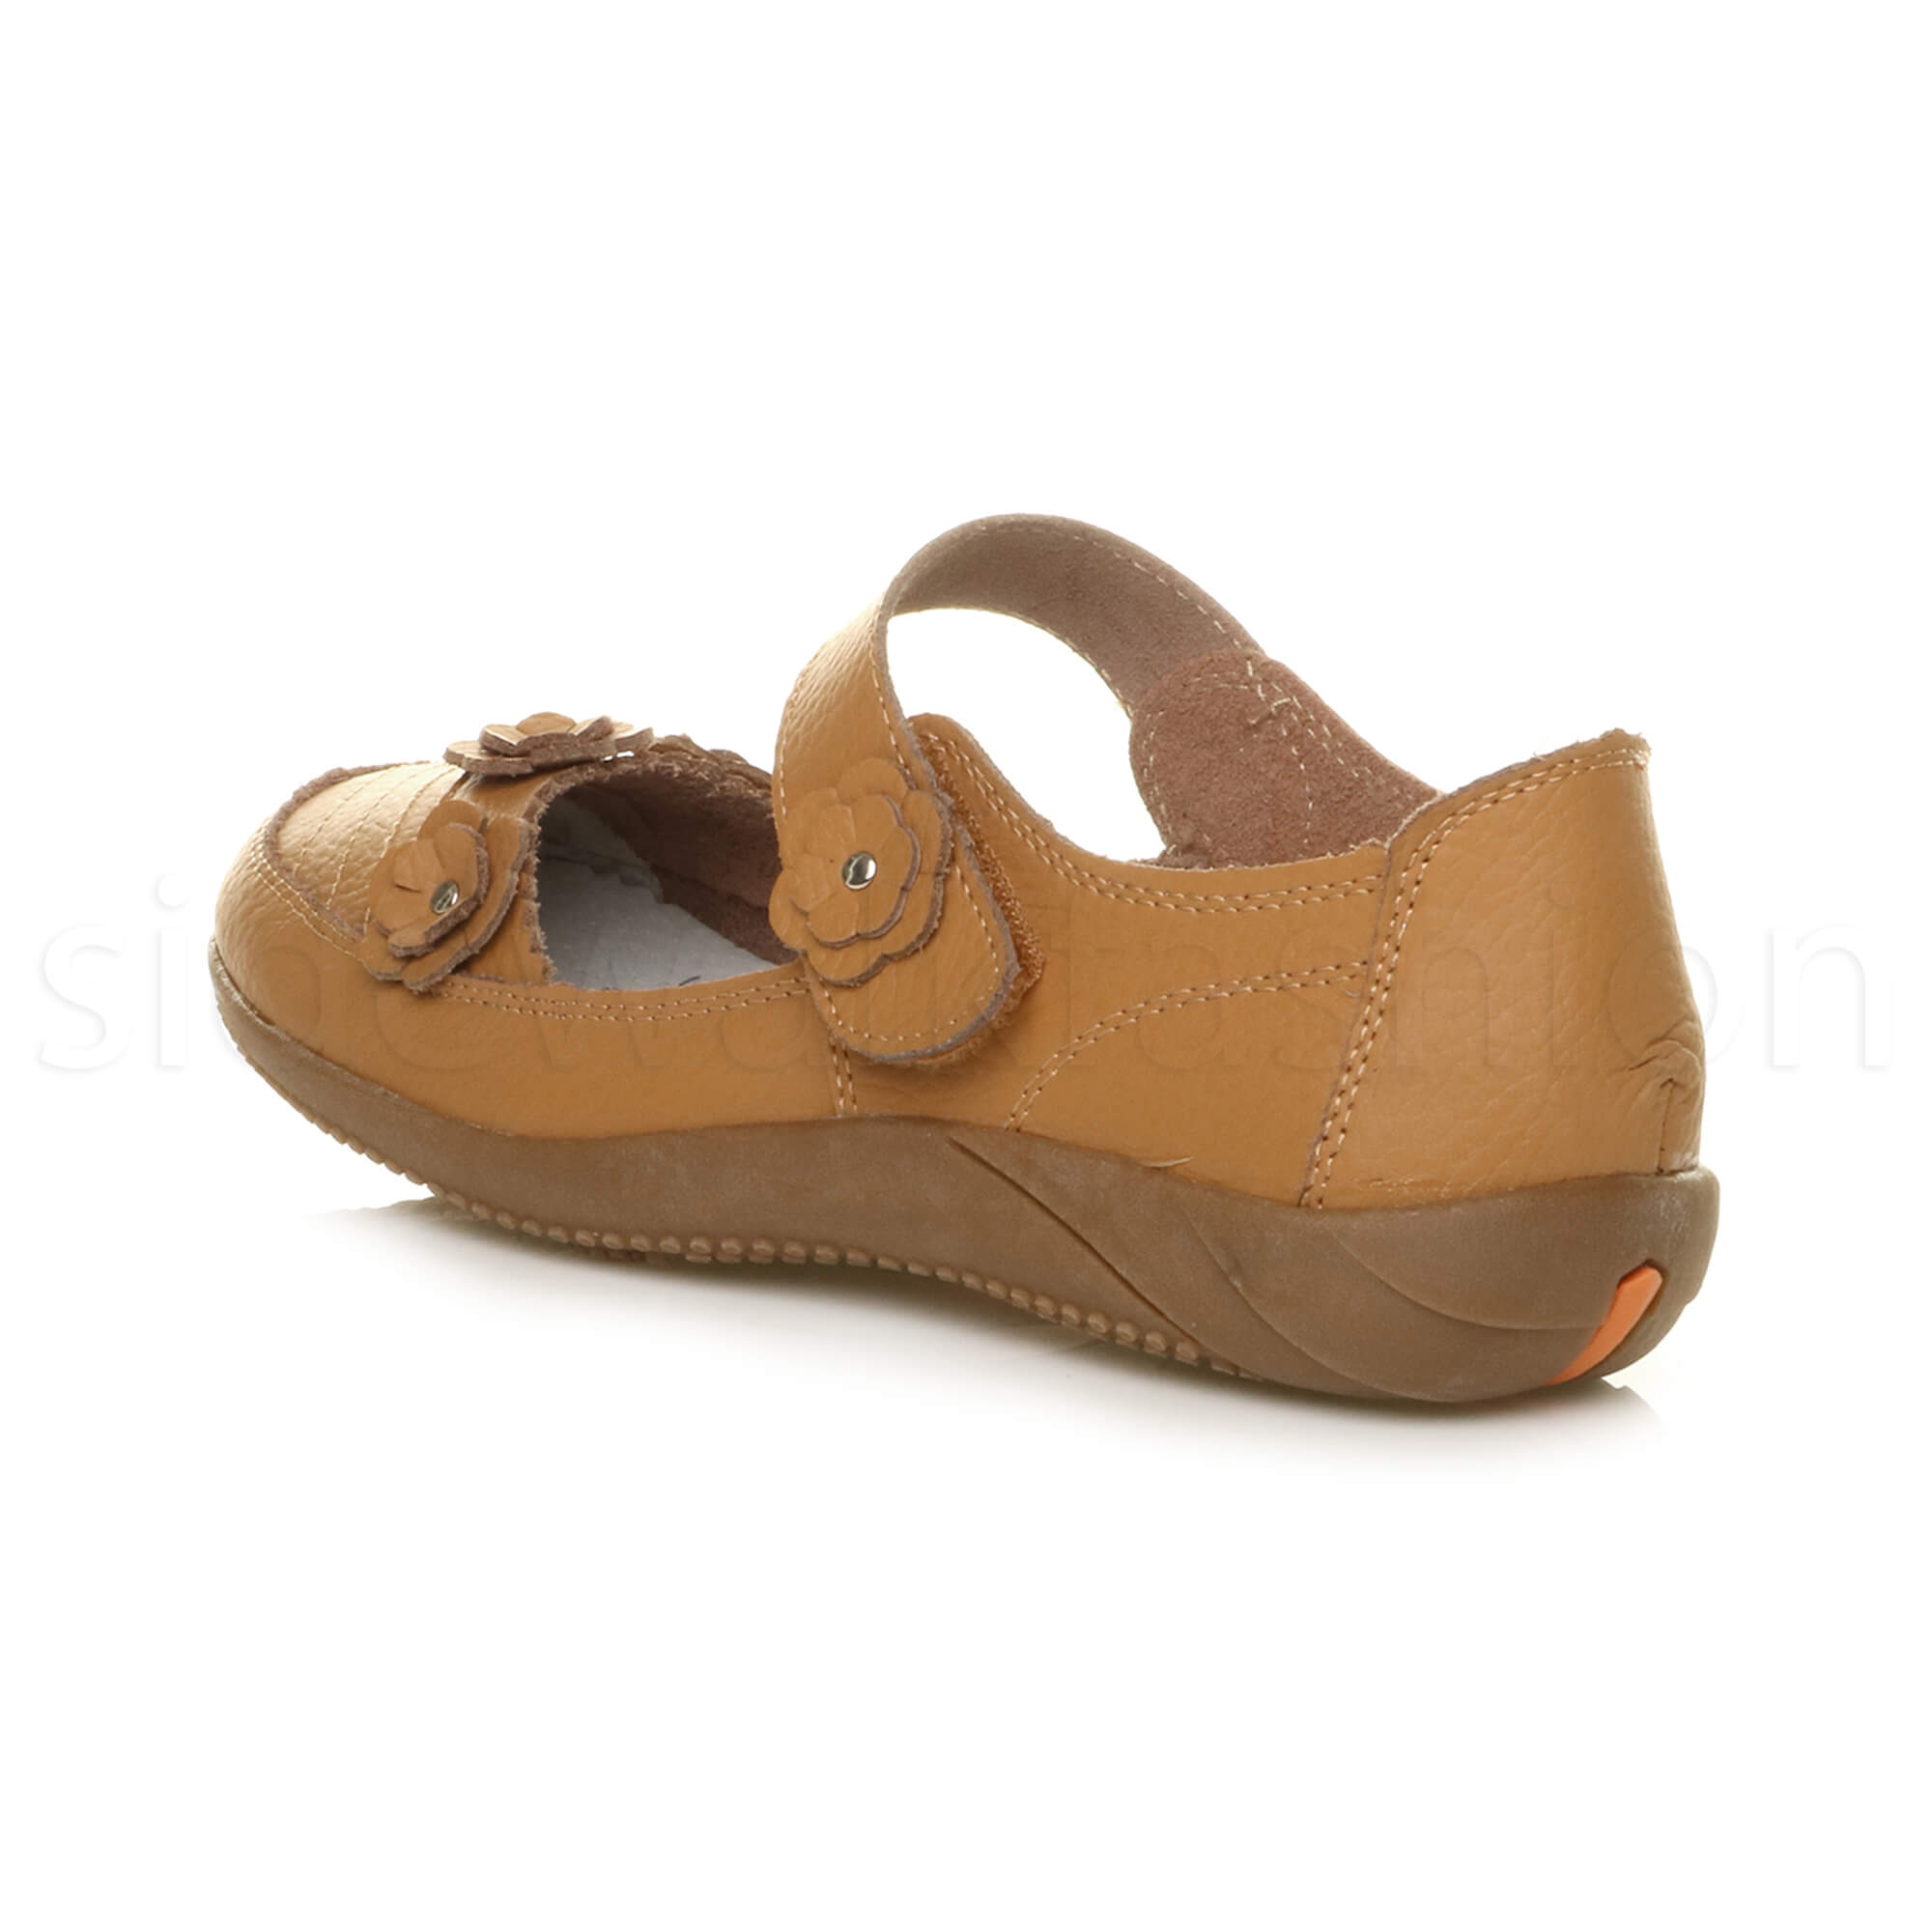 Womens-ladies-leather-comfort-walking-casual-sandals-mary-jane-strap-shoes-size thumbnail 20